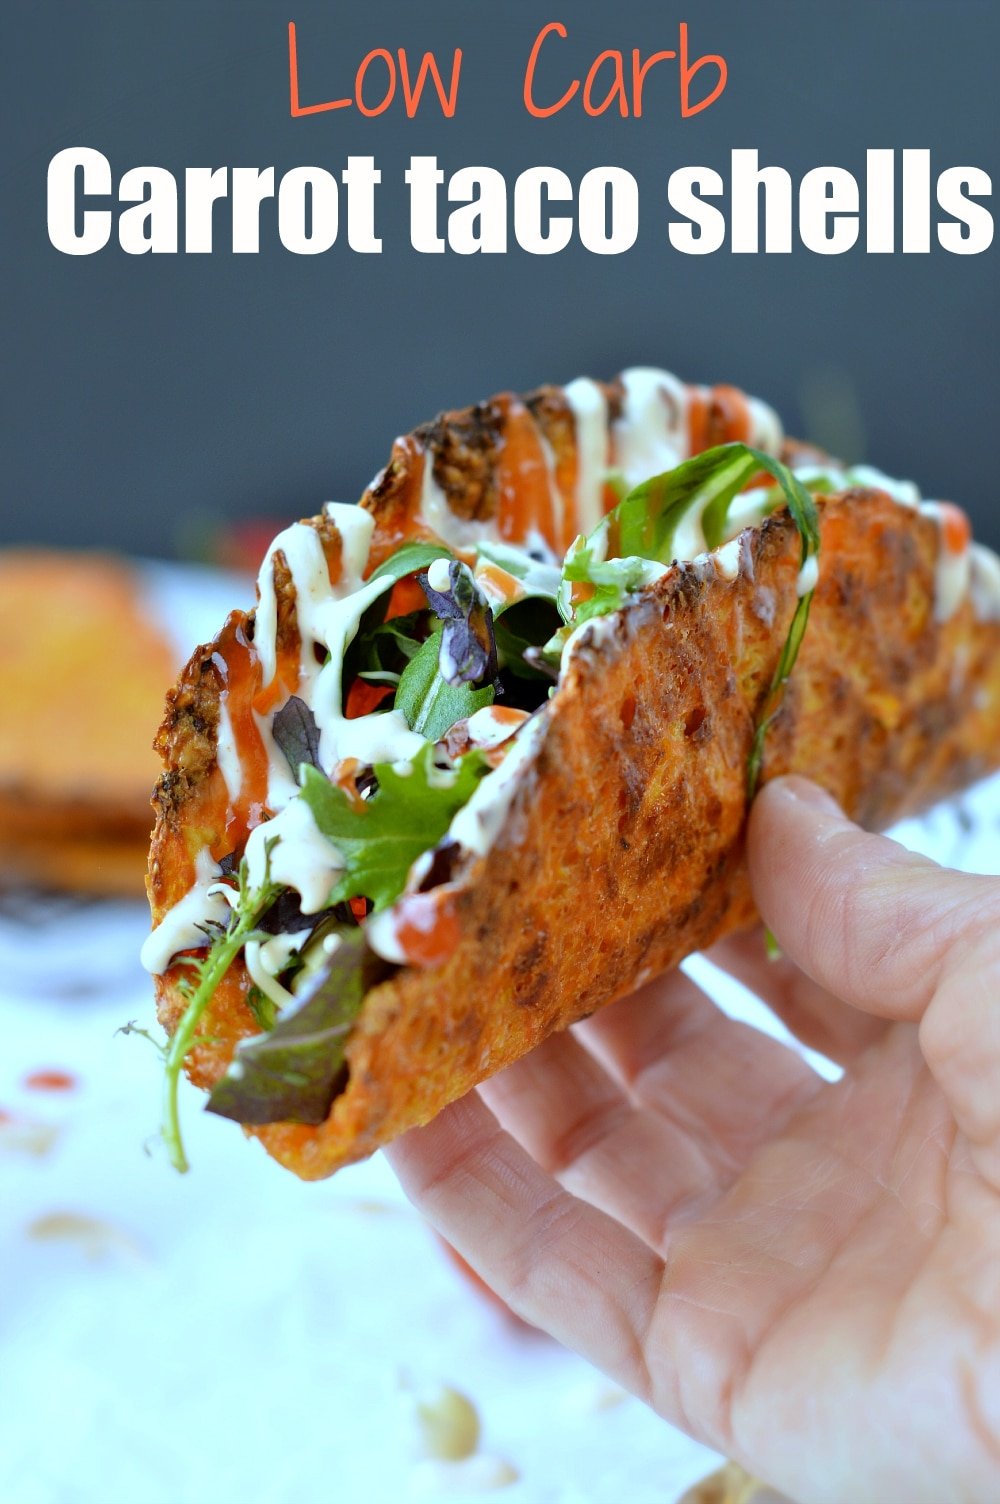 low carb carrot taco shells